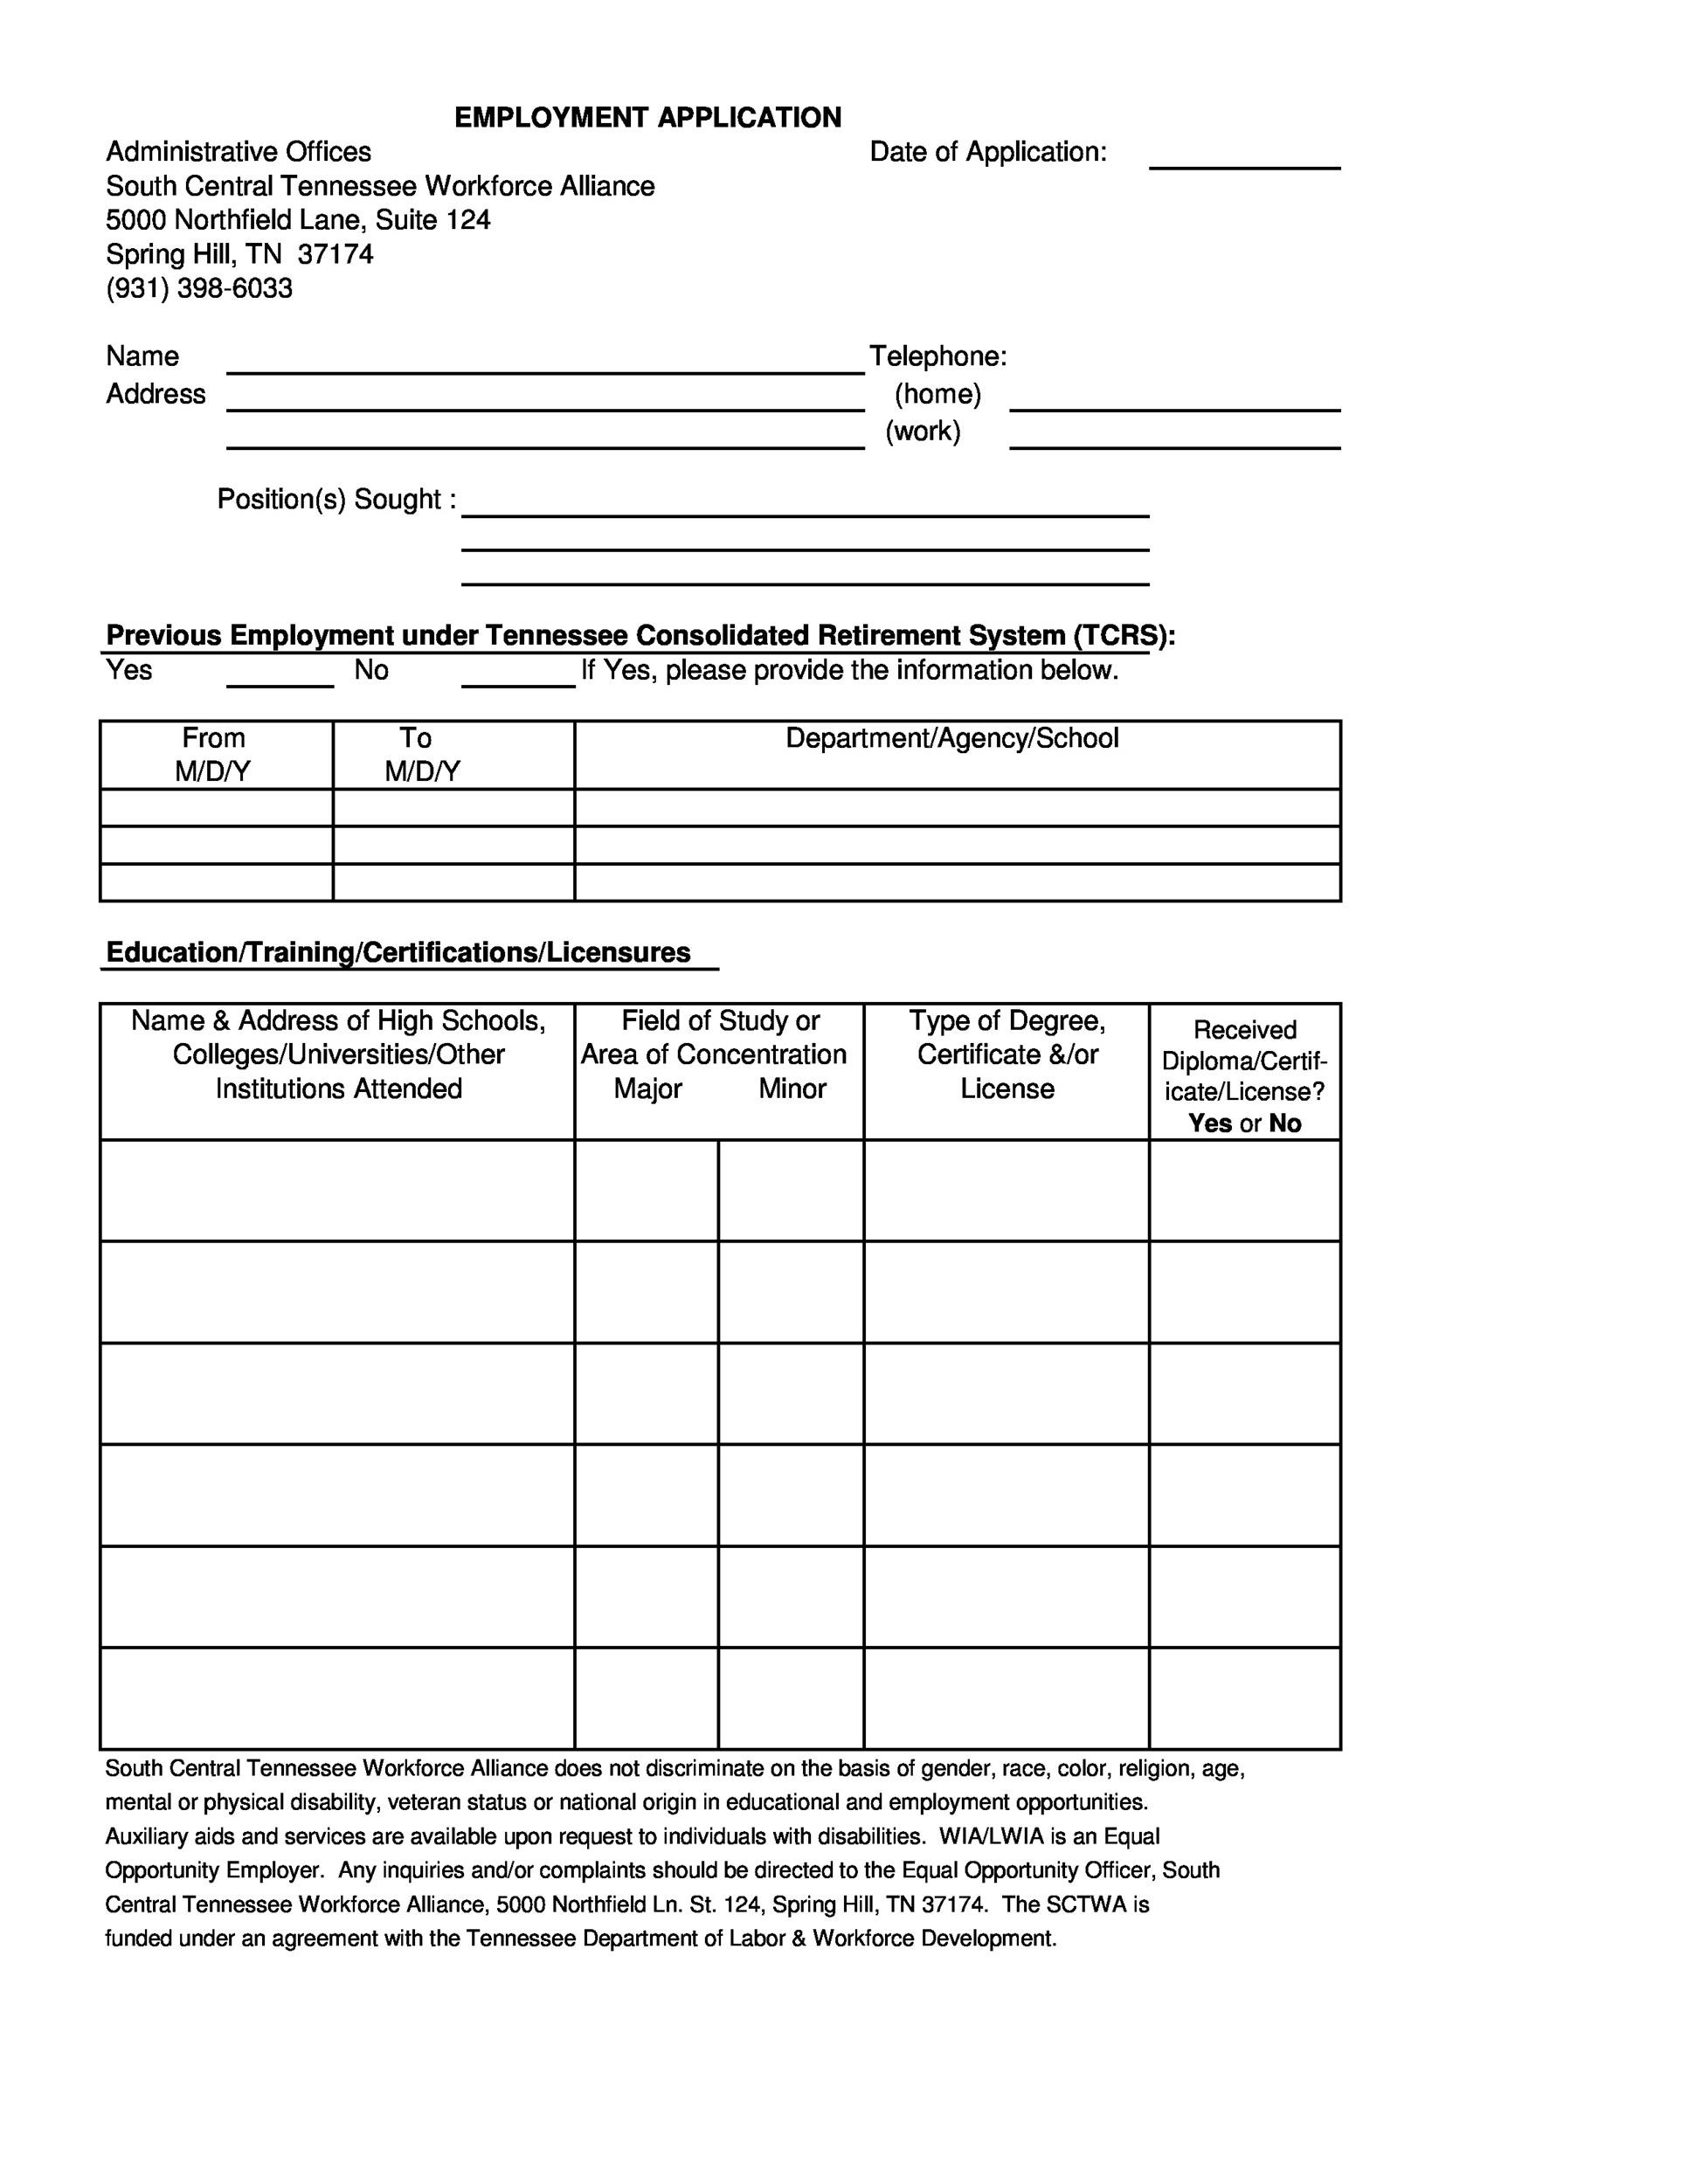 50 Free Employment / Job Application Form Templates [Printable ...